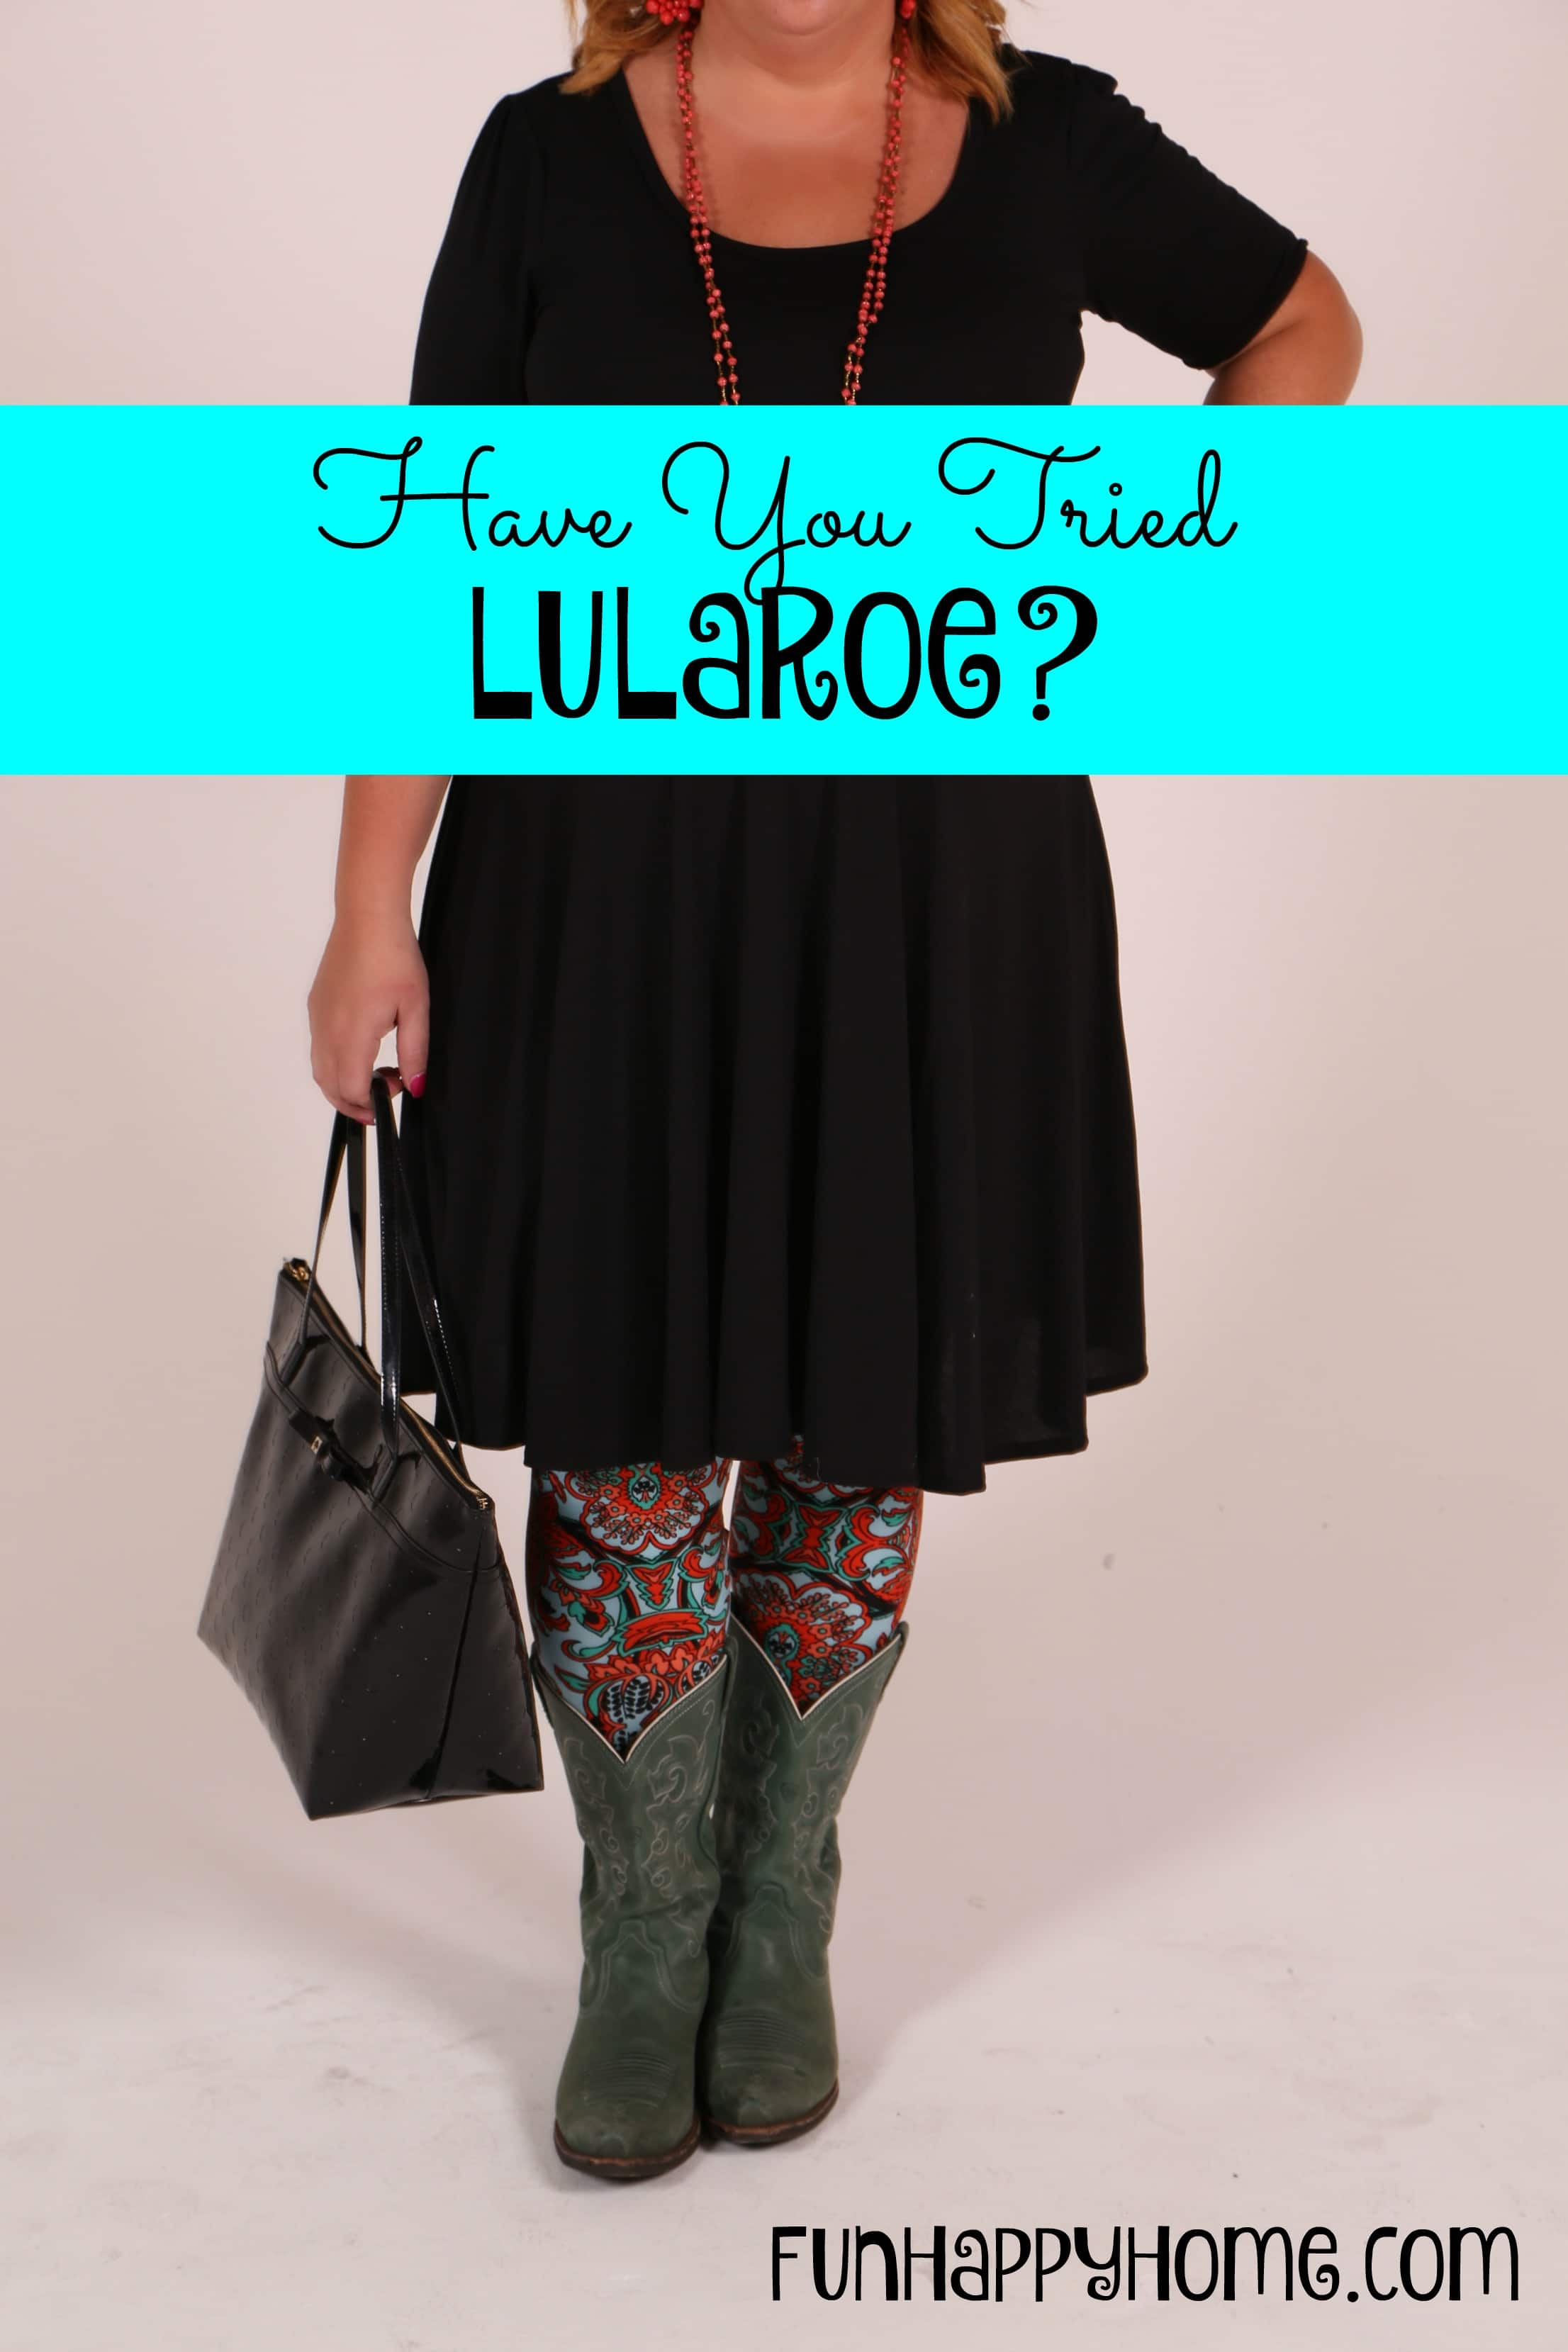 738b10084bb8 LuLaRoe: Reviews of LuLaRoe Clothes Plus Enter to Win LuLaRoe Leggings for  You and a Friend!